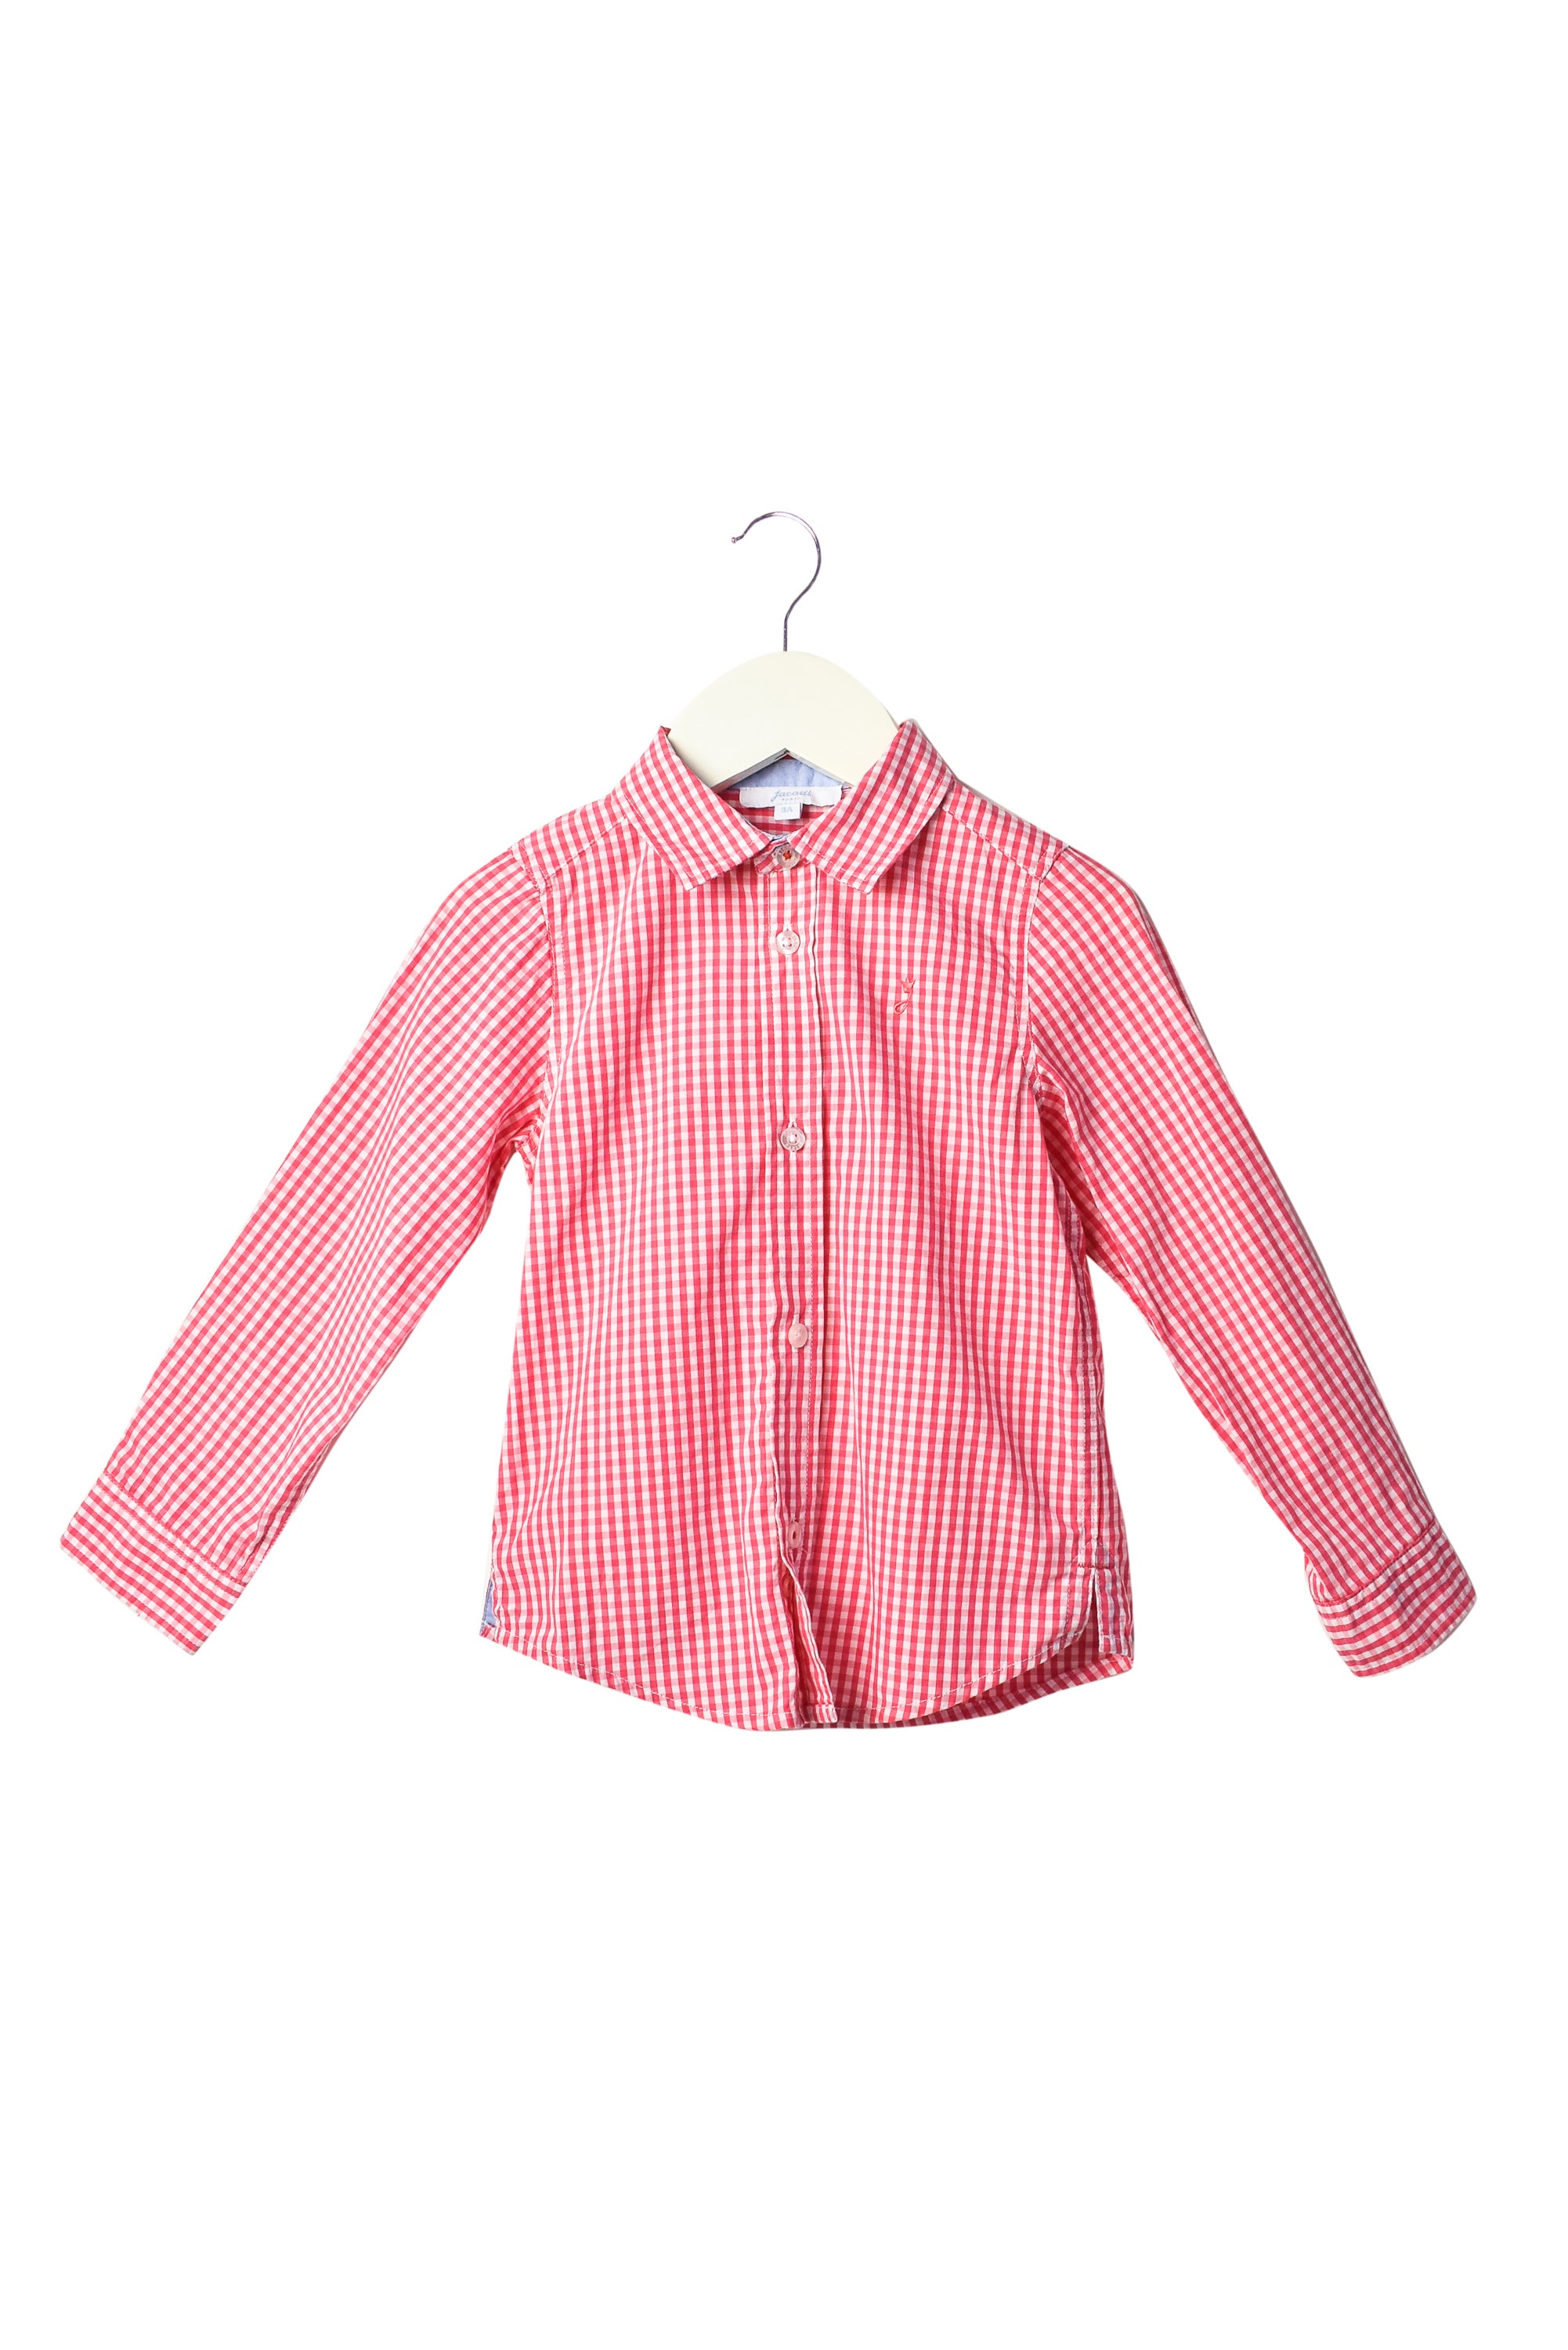 10006564 Jacadi Kids~Shirt 3T at Retykle